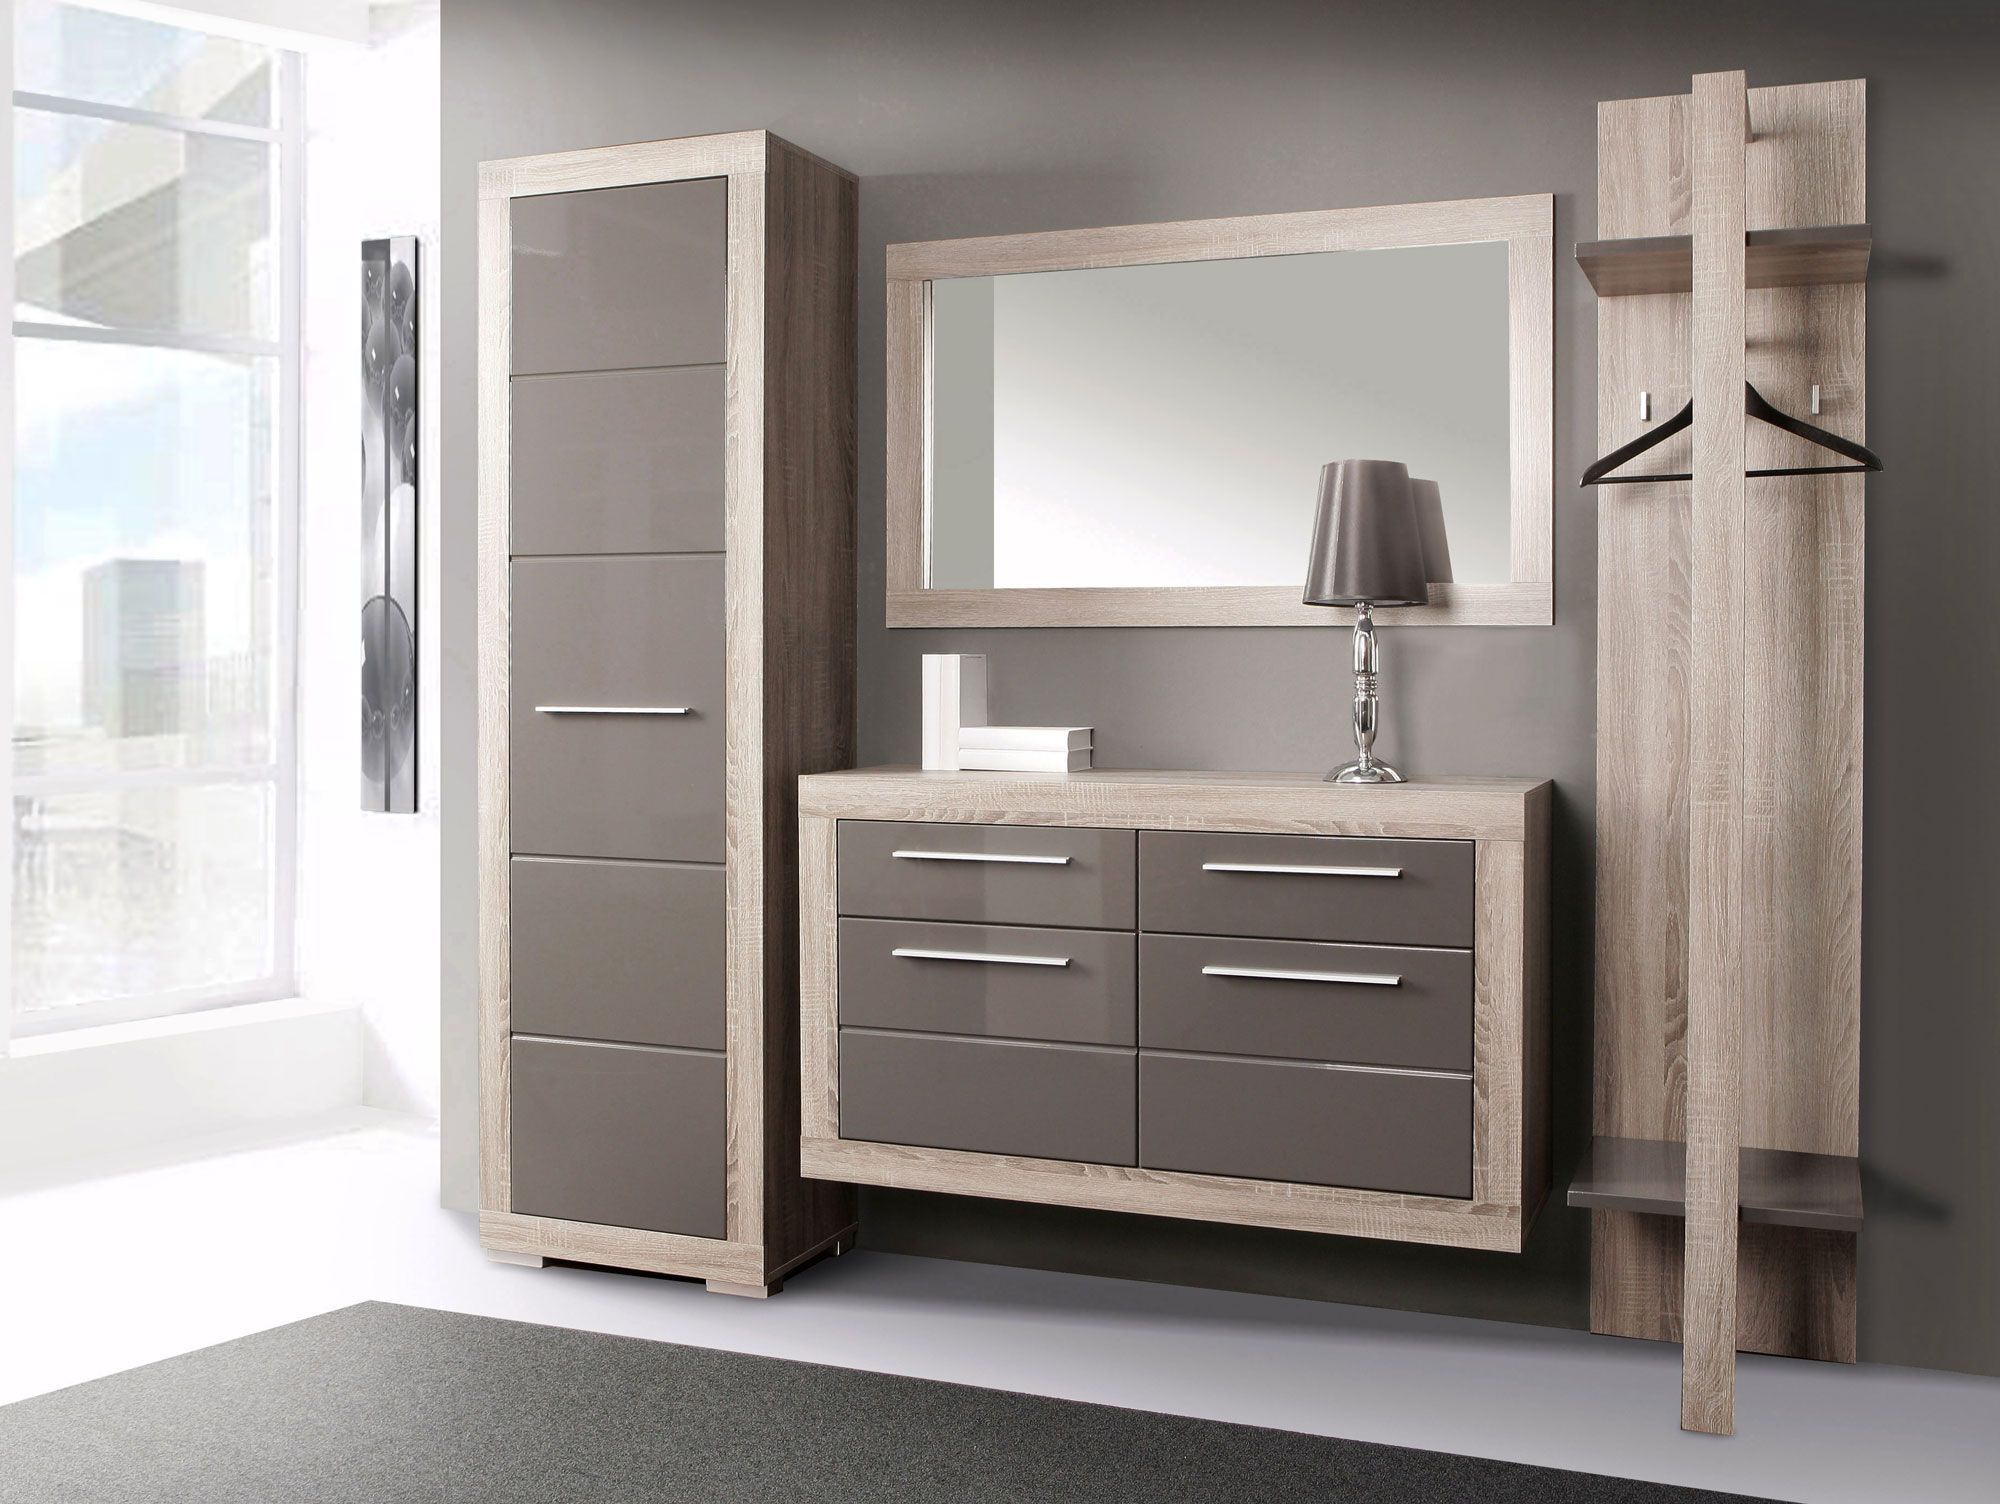 amberg dielenschrank sonoma eiche grau grau hochglanz. Black Bedroom Furniture Sets. Home Design Ideas